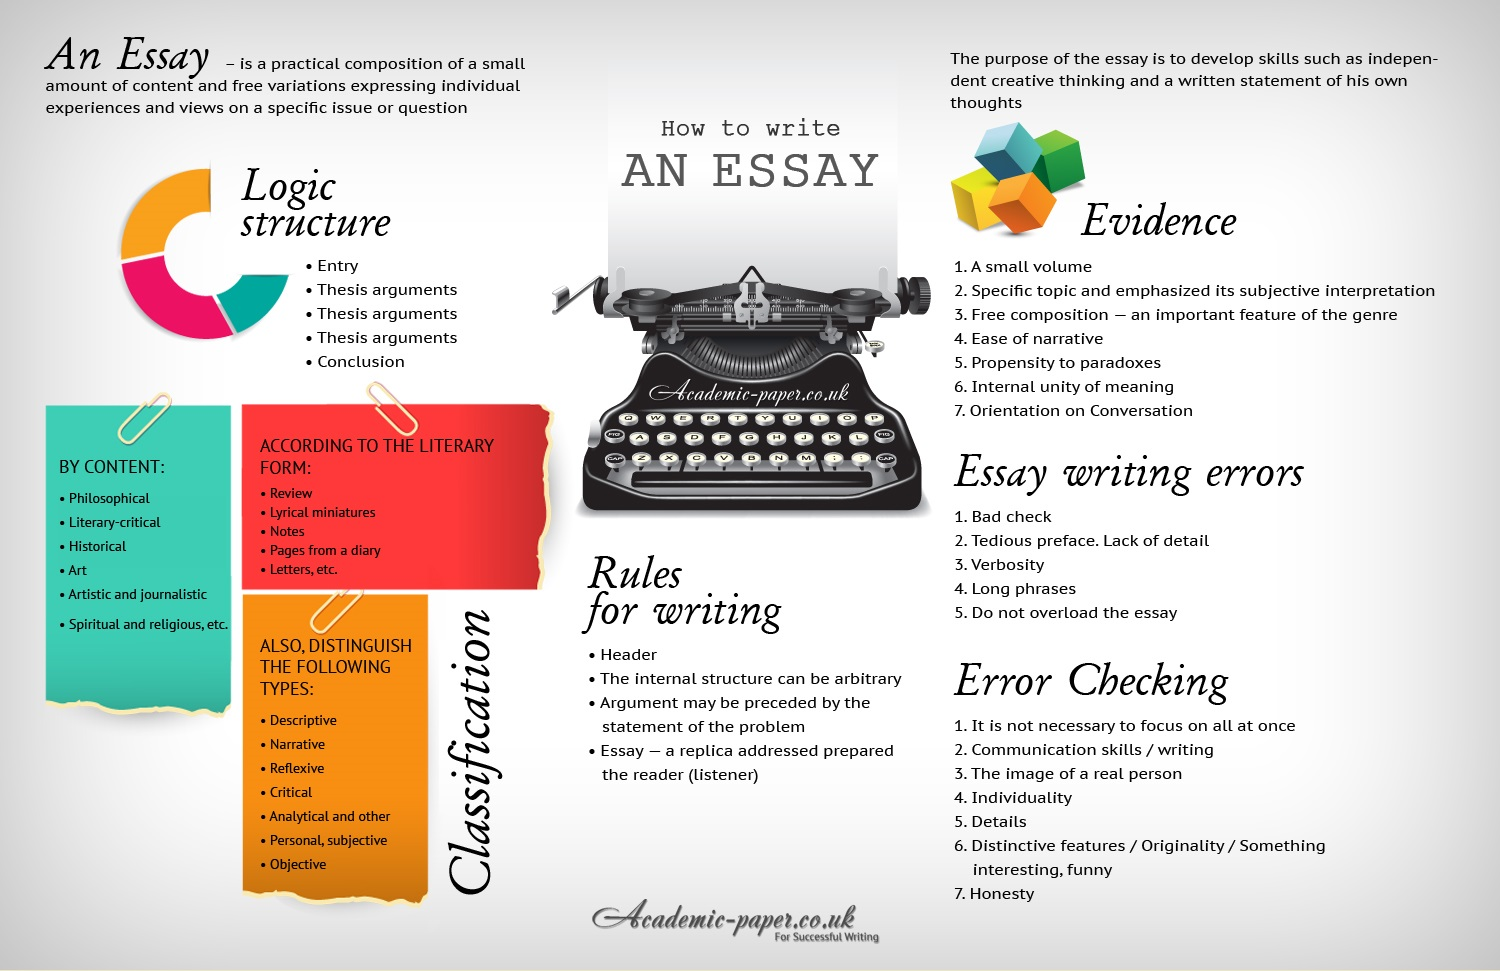 essay for you website that writes essays for you com english essay  writes essay for you writes essay for you stampangroup eth frac eth micro ntilde ntilde eth